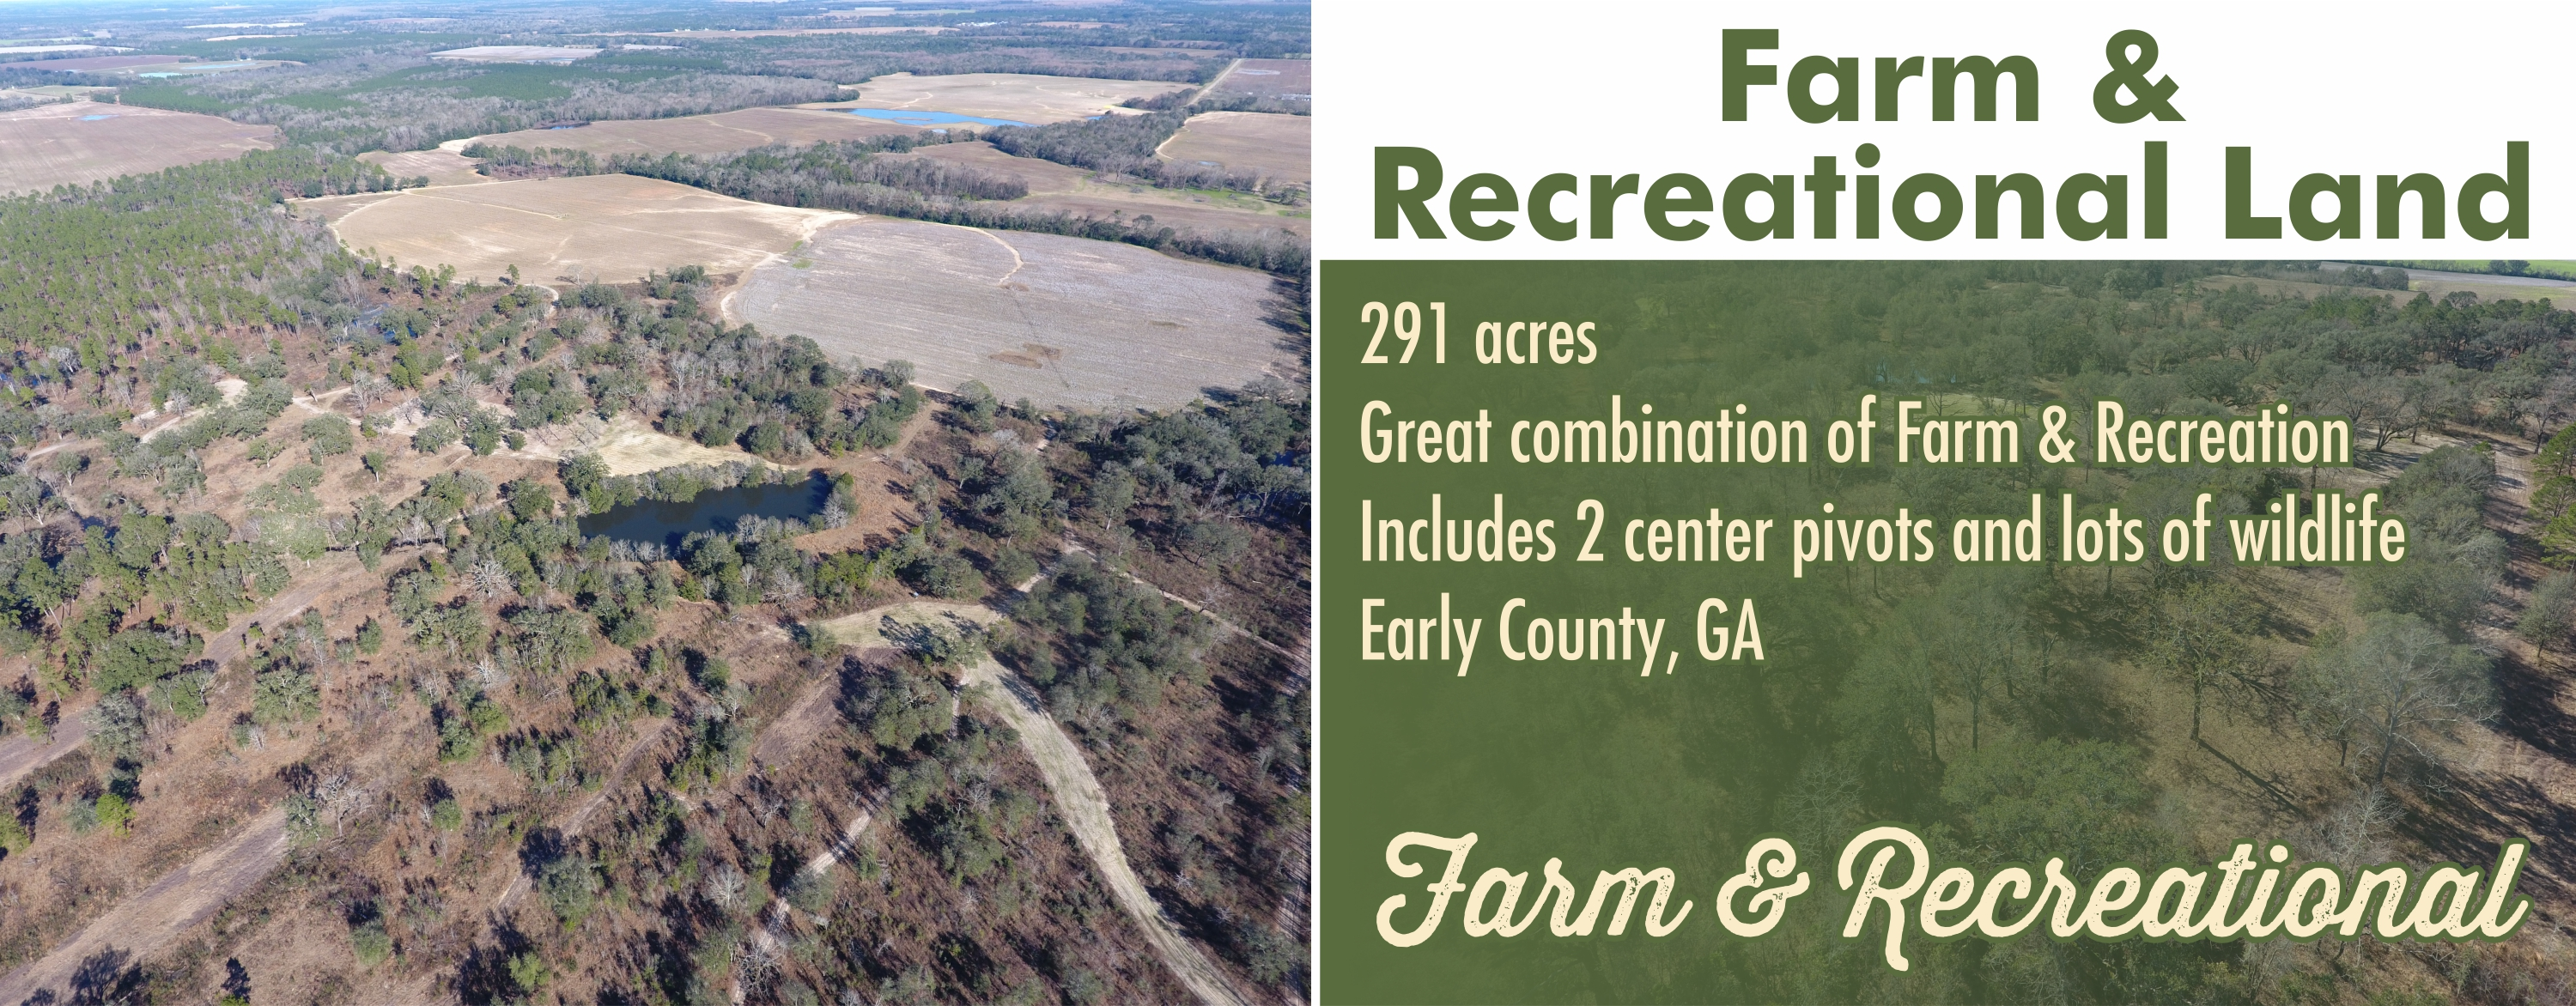 Farm & Recreational Land